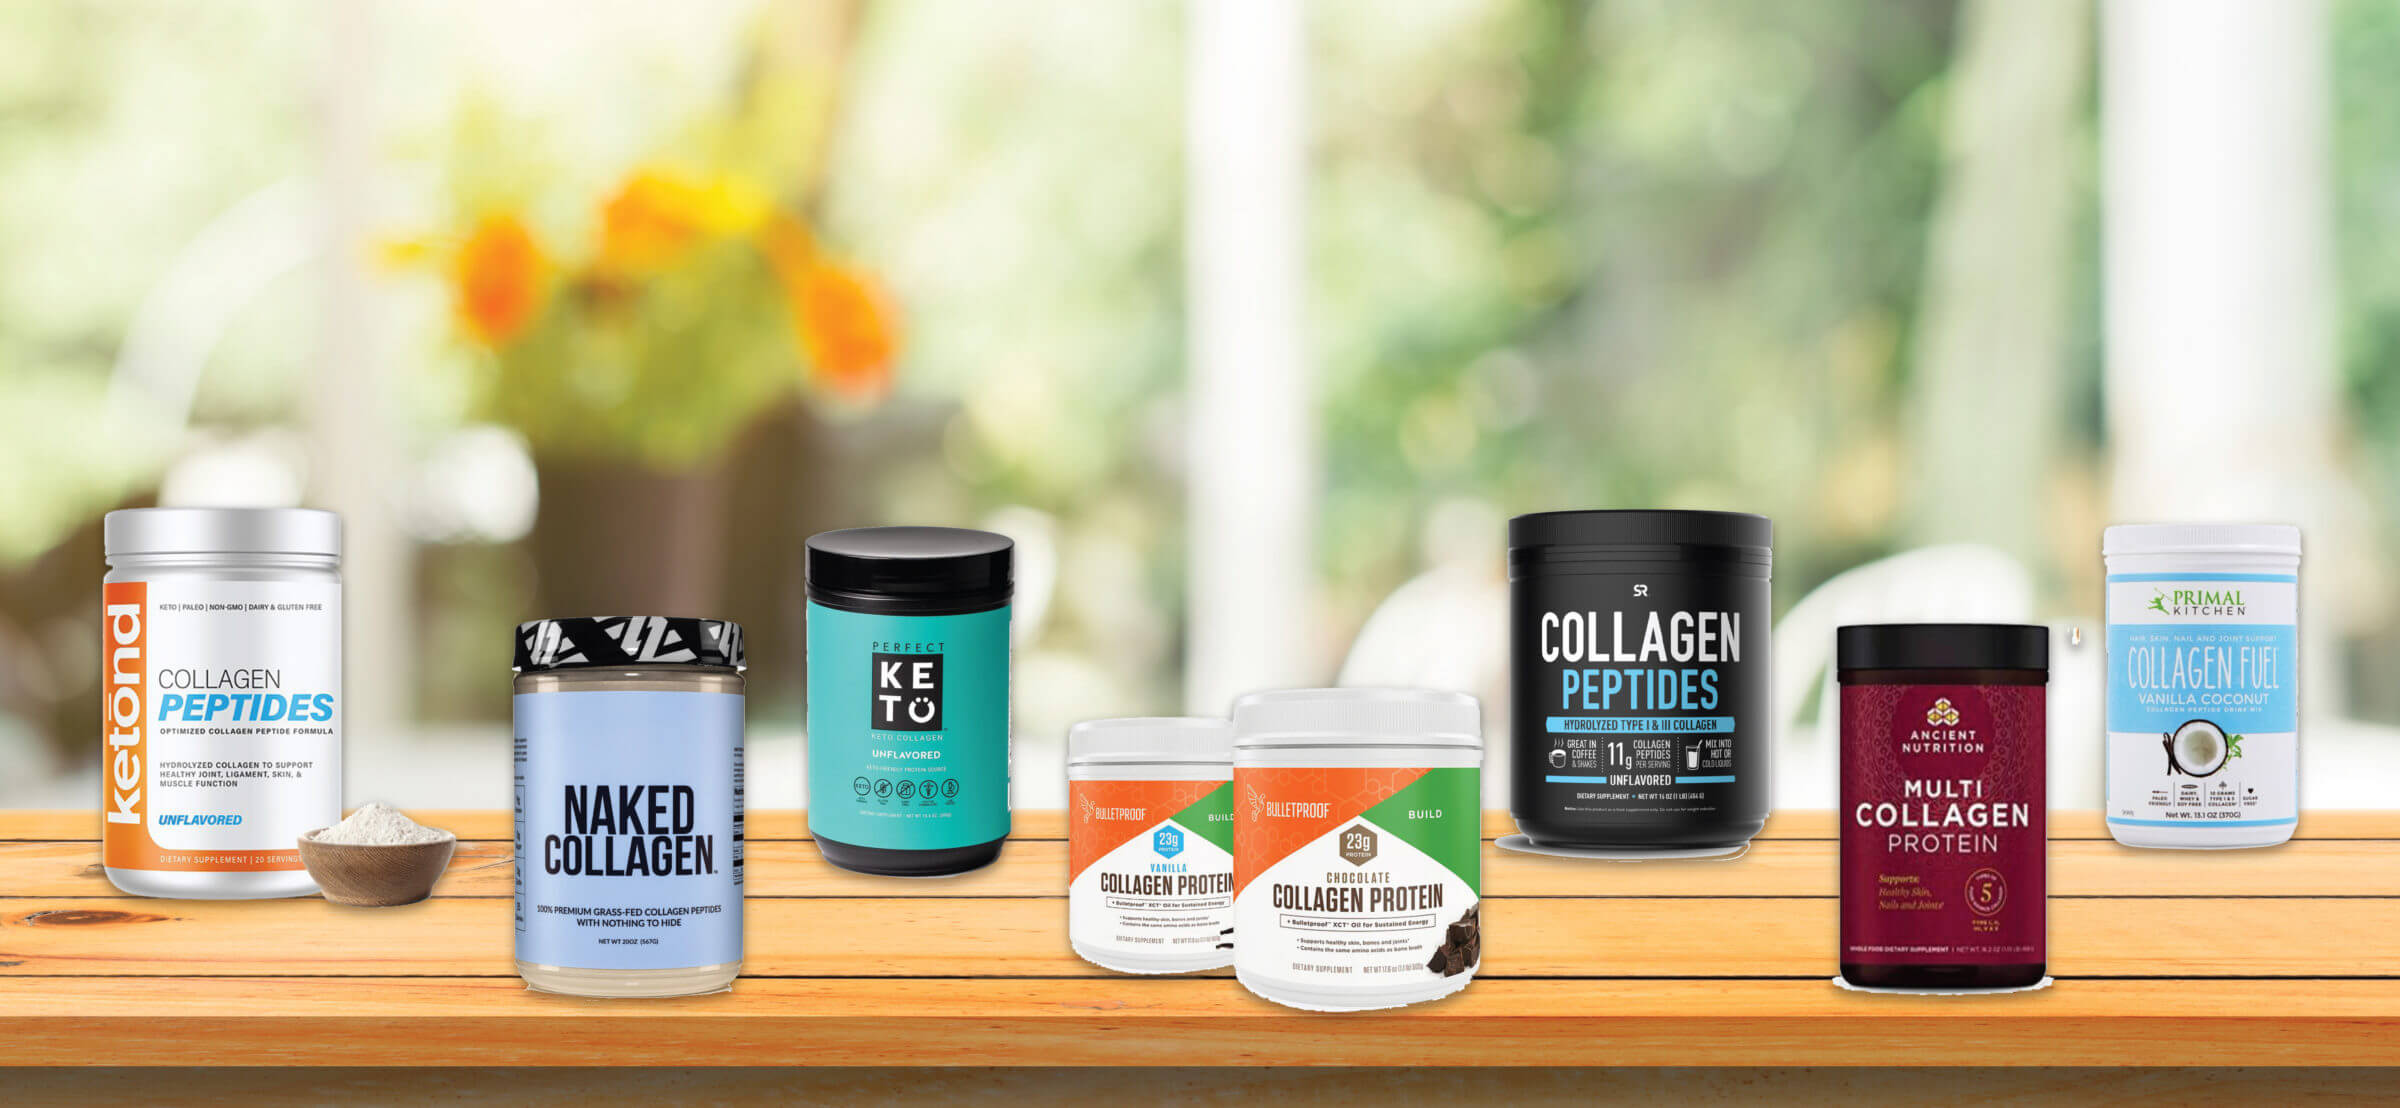 WHAT ARE THE BEST COLLAGEN POWDERS?